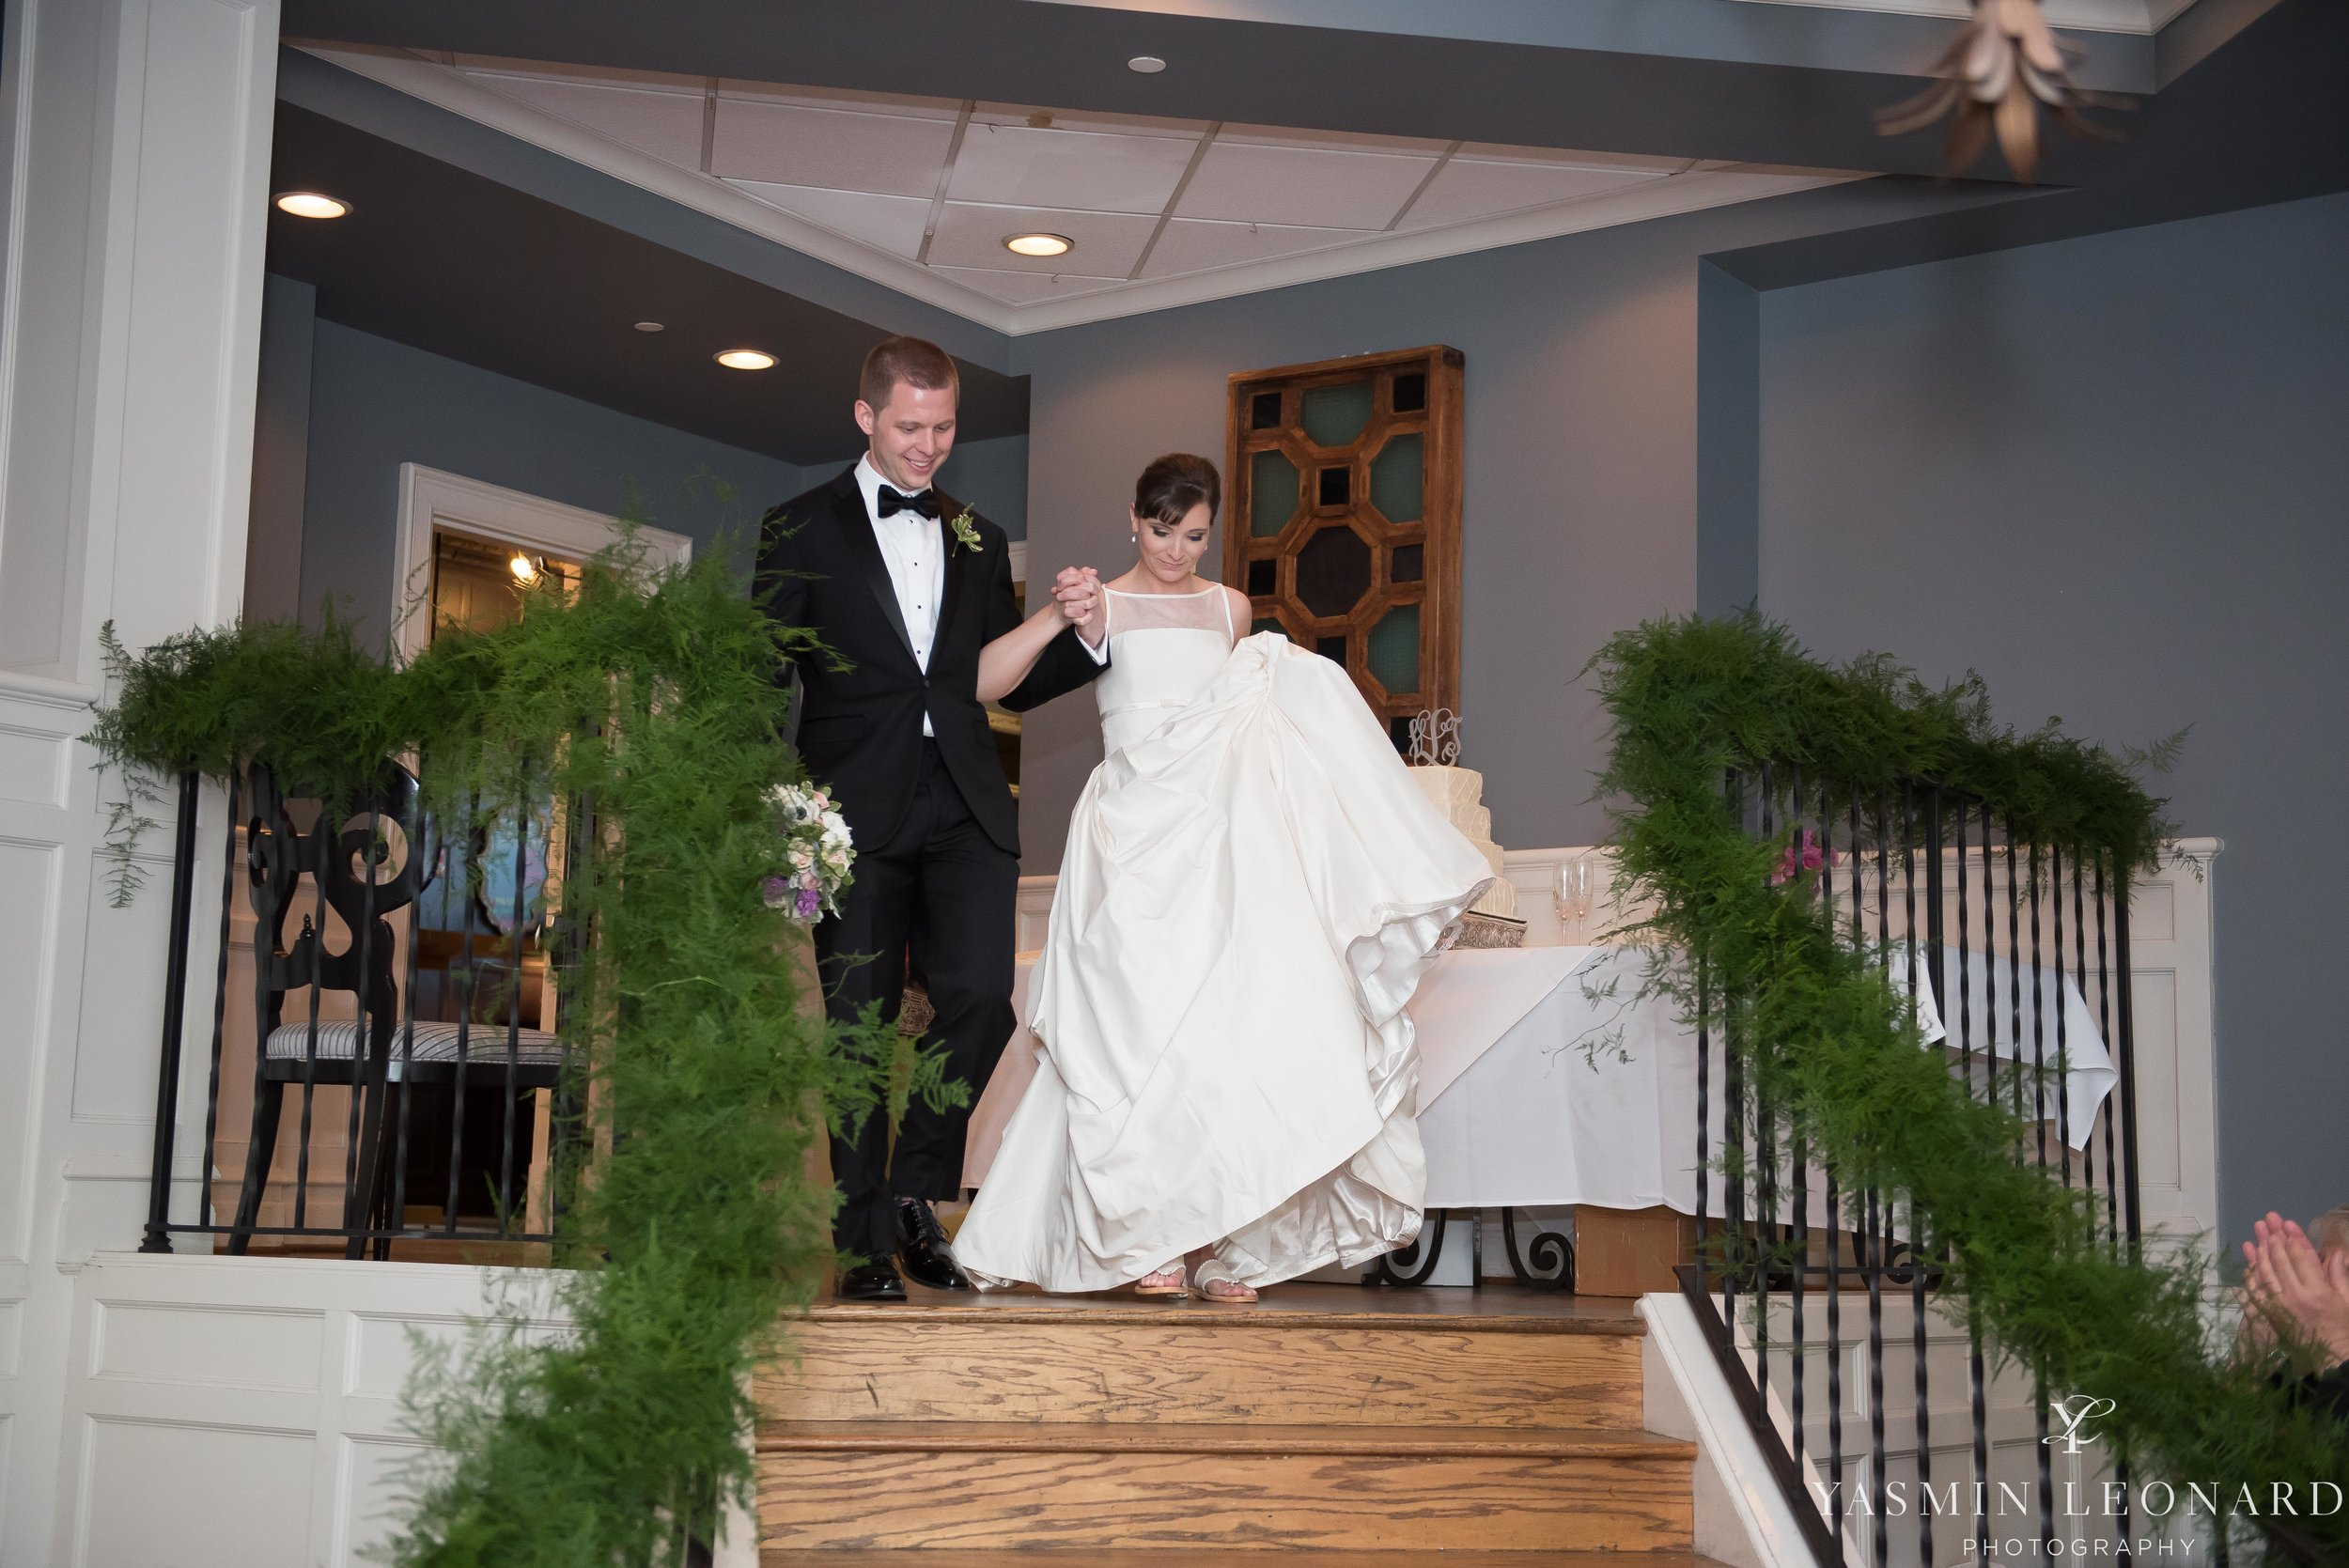 JH ADAMS INN - HIGH POINT UNIVERSITY CHAPEL WEDDING - HPU CHAPEL - HIGH POINT WEDDINGS - NC WEDDING PHOTOGRAPHER - YASMIN LEONARD PHOTOGRAPHY - HIGH POINT NC - HIGH POINT WEDDINGS -53.jpg